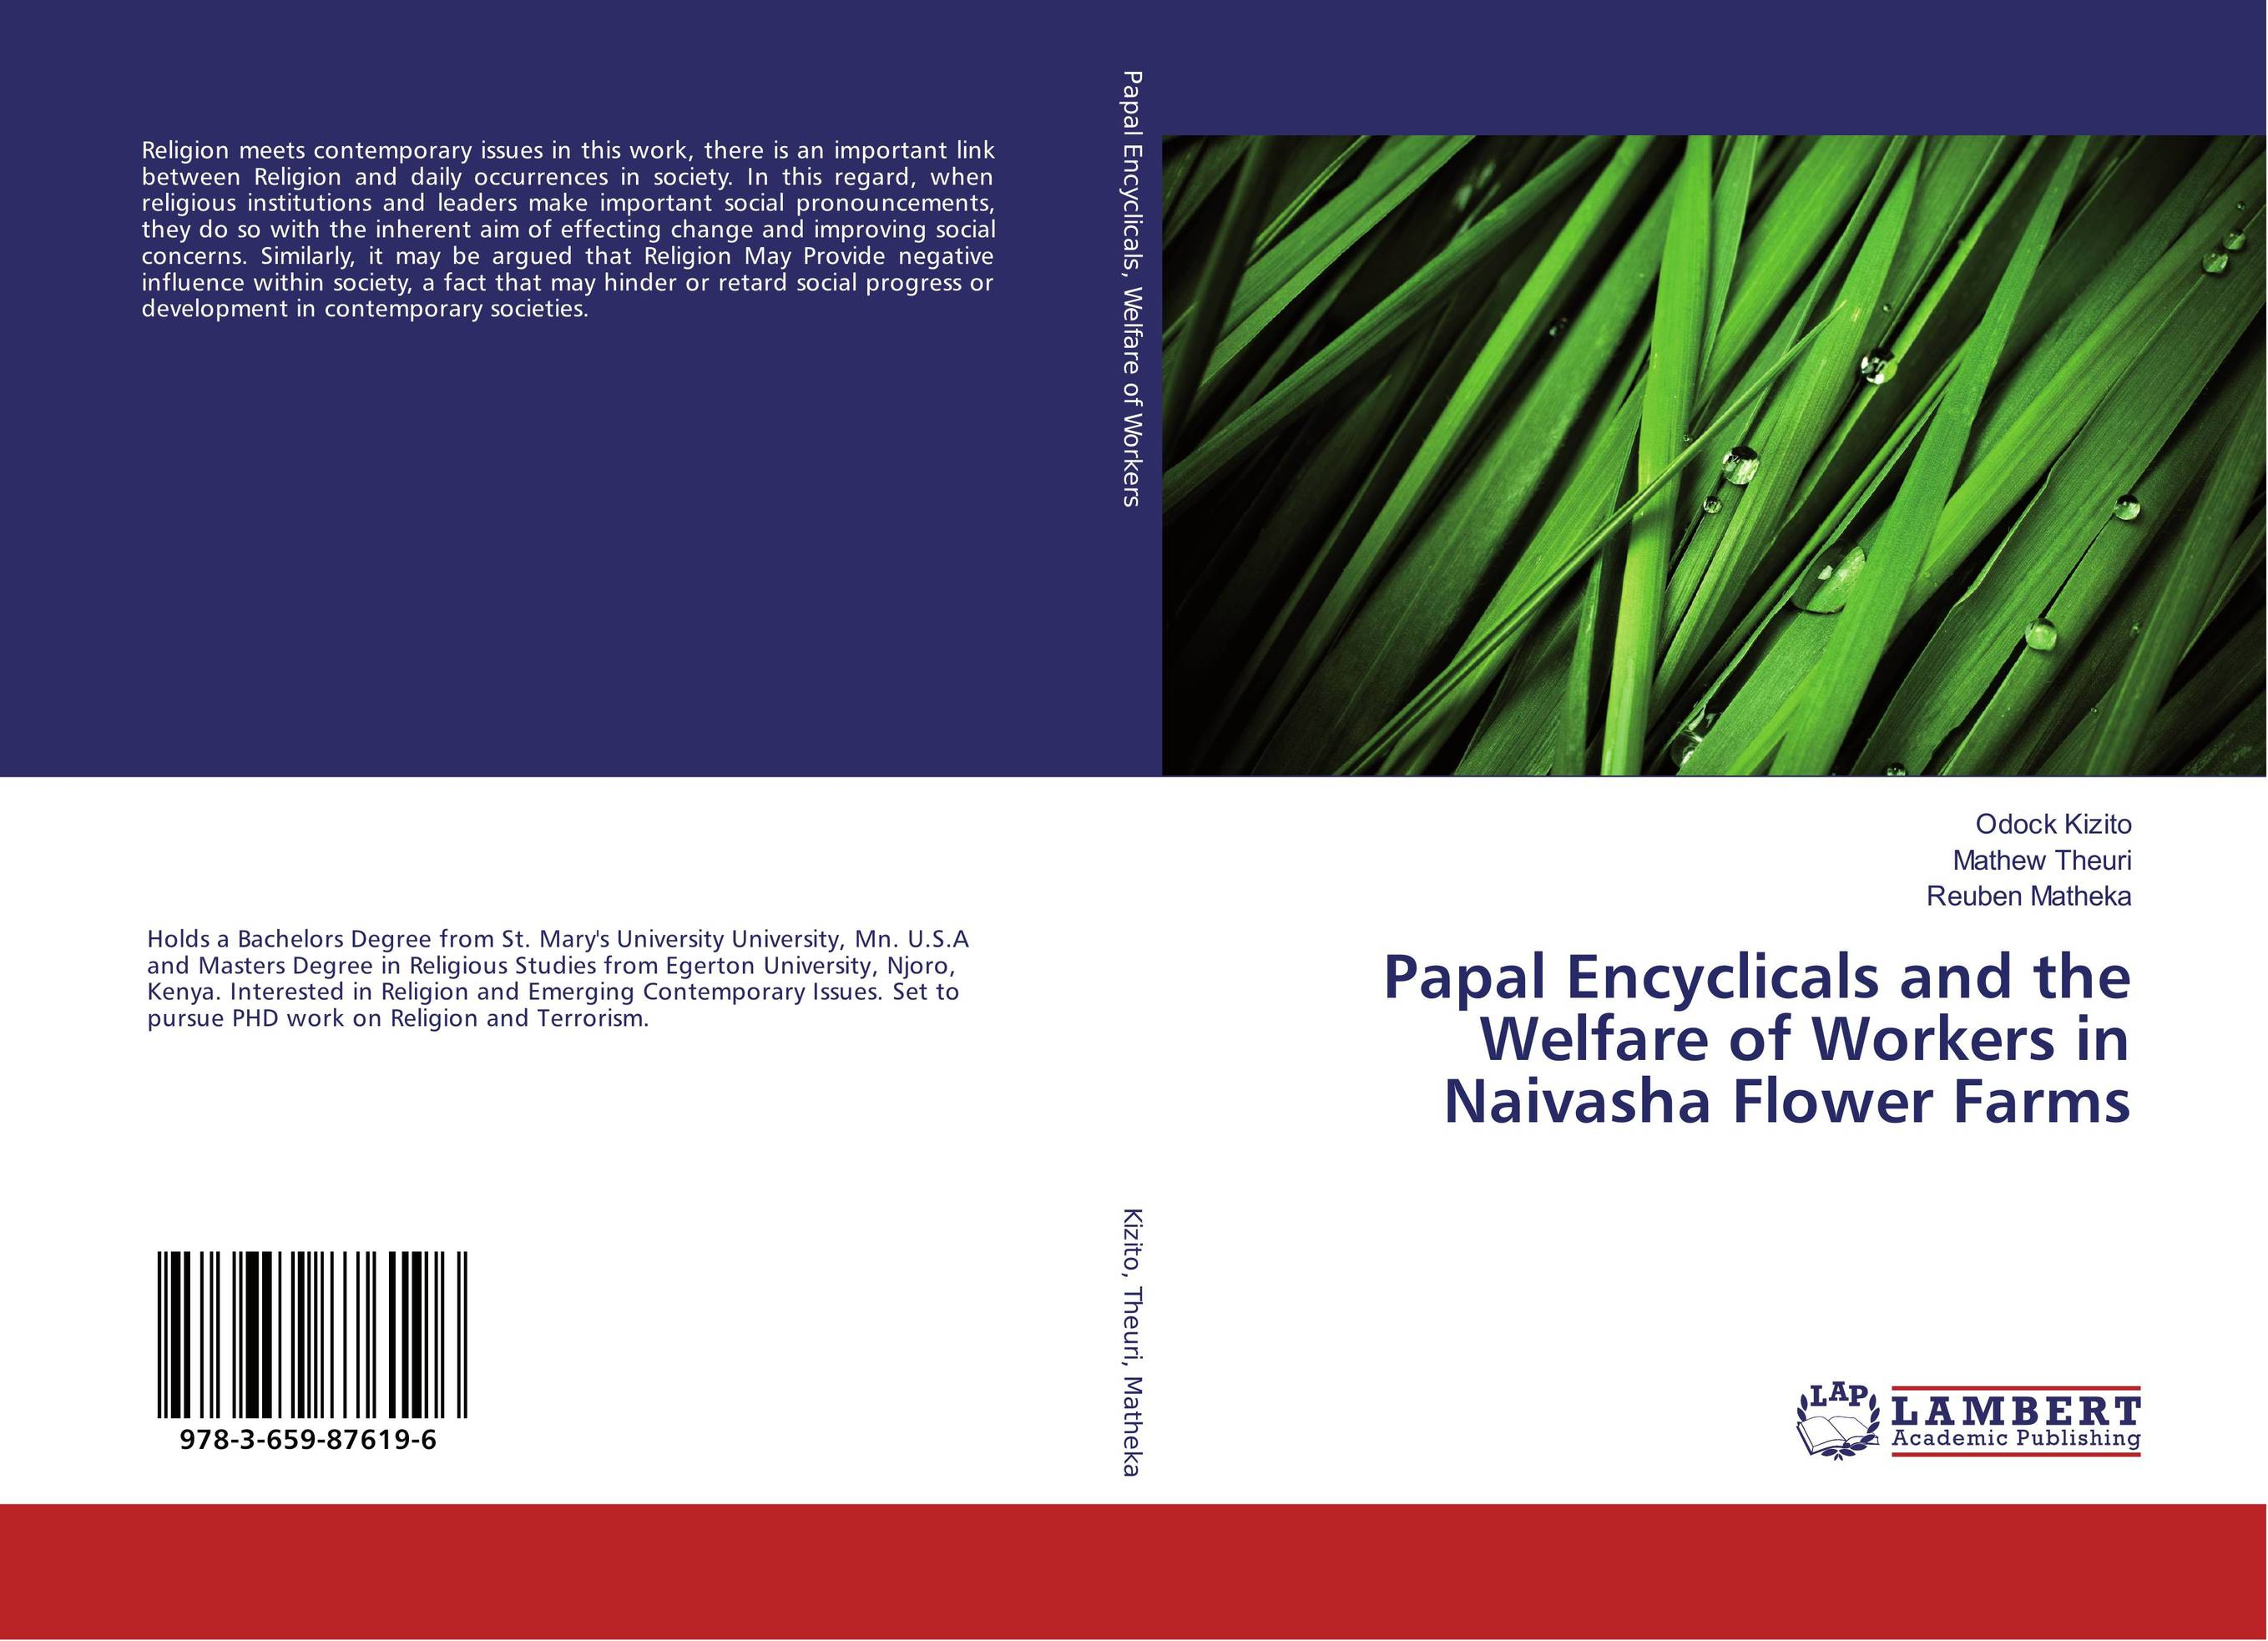 Papal Encyclicals and the Welfare of Workers in Naivasha Flower Farms promoting social change in the arab gulf